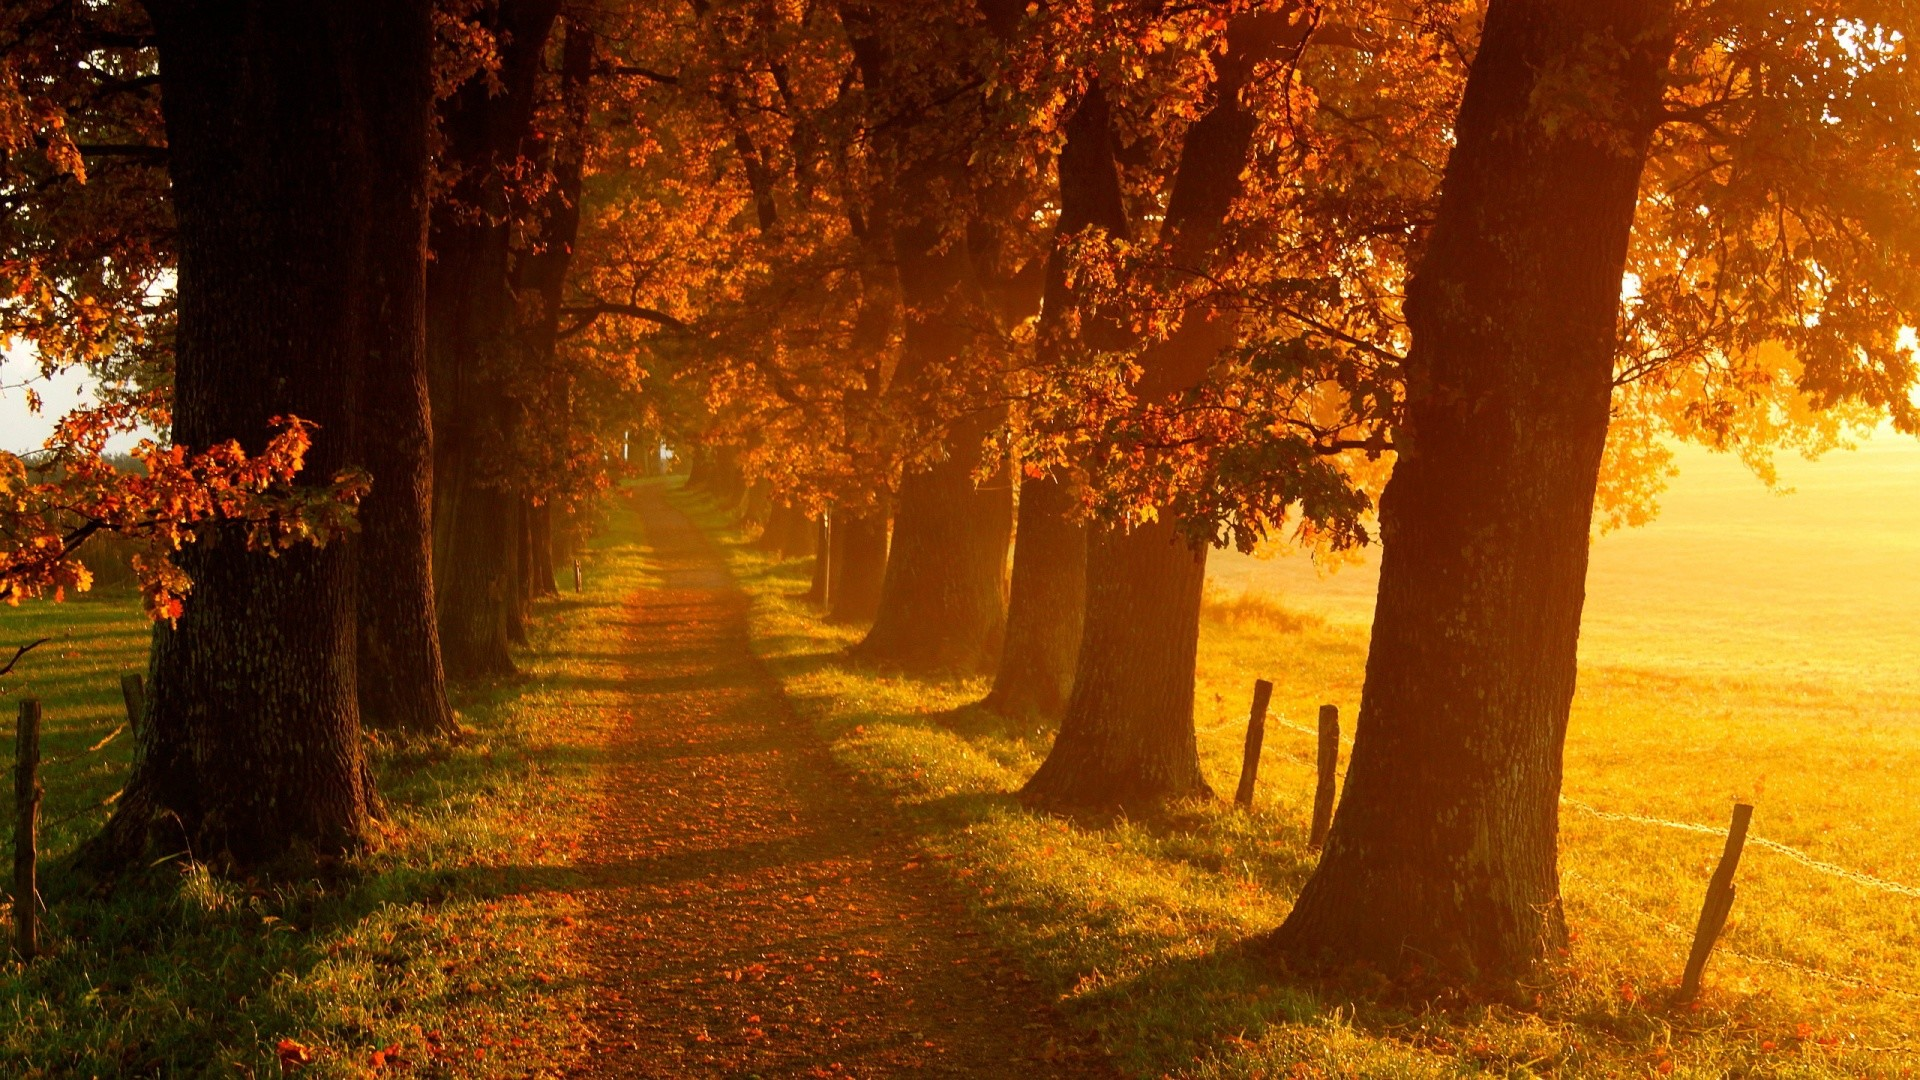 0 Autumn Wallpaper Hd Collection Autumn Wallpapers, HDQ Beautiful Autumn  Images amp Wallpapers .